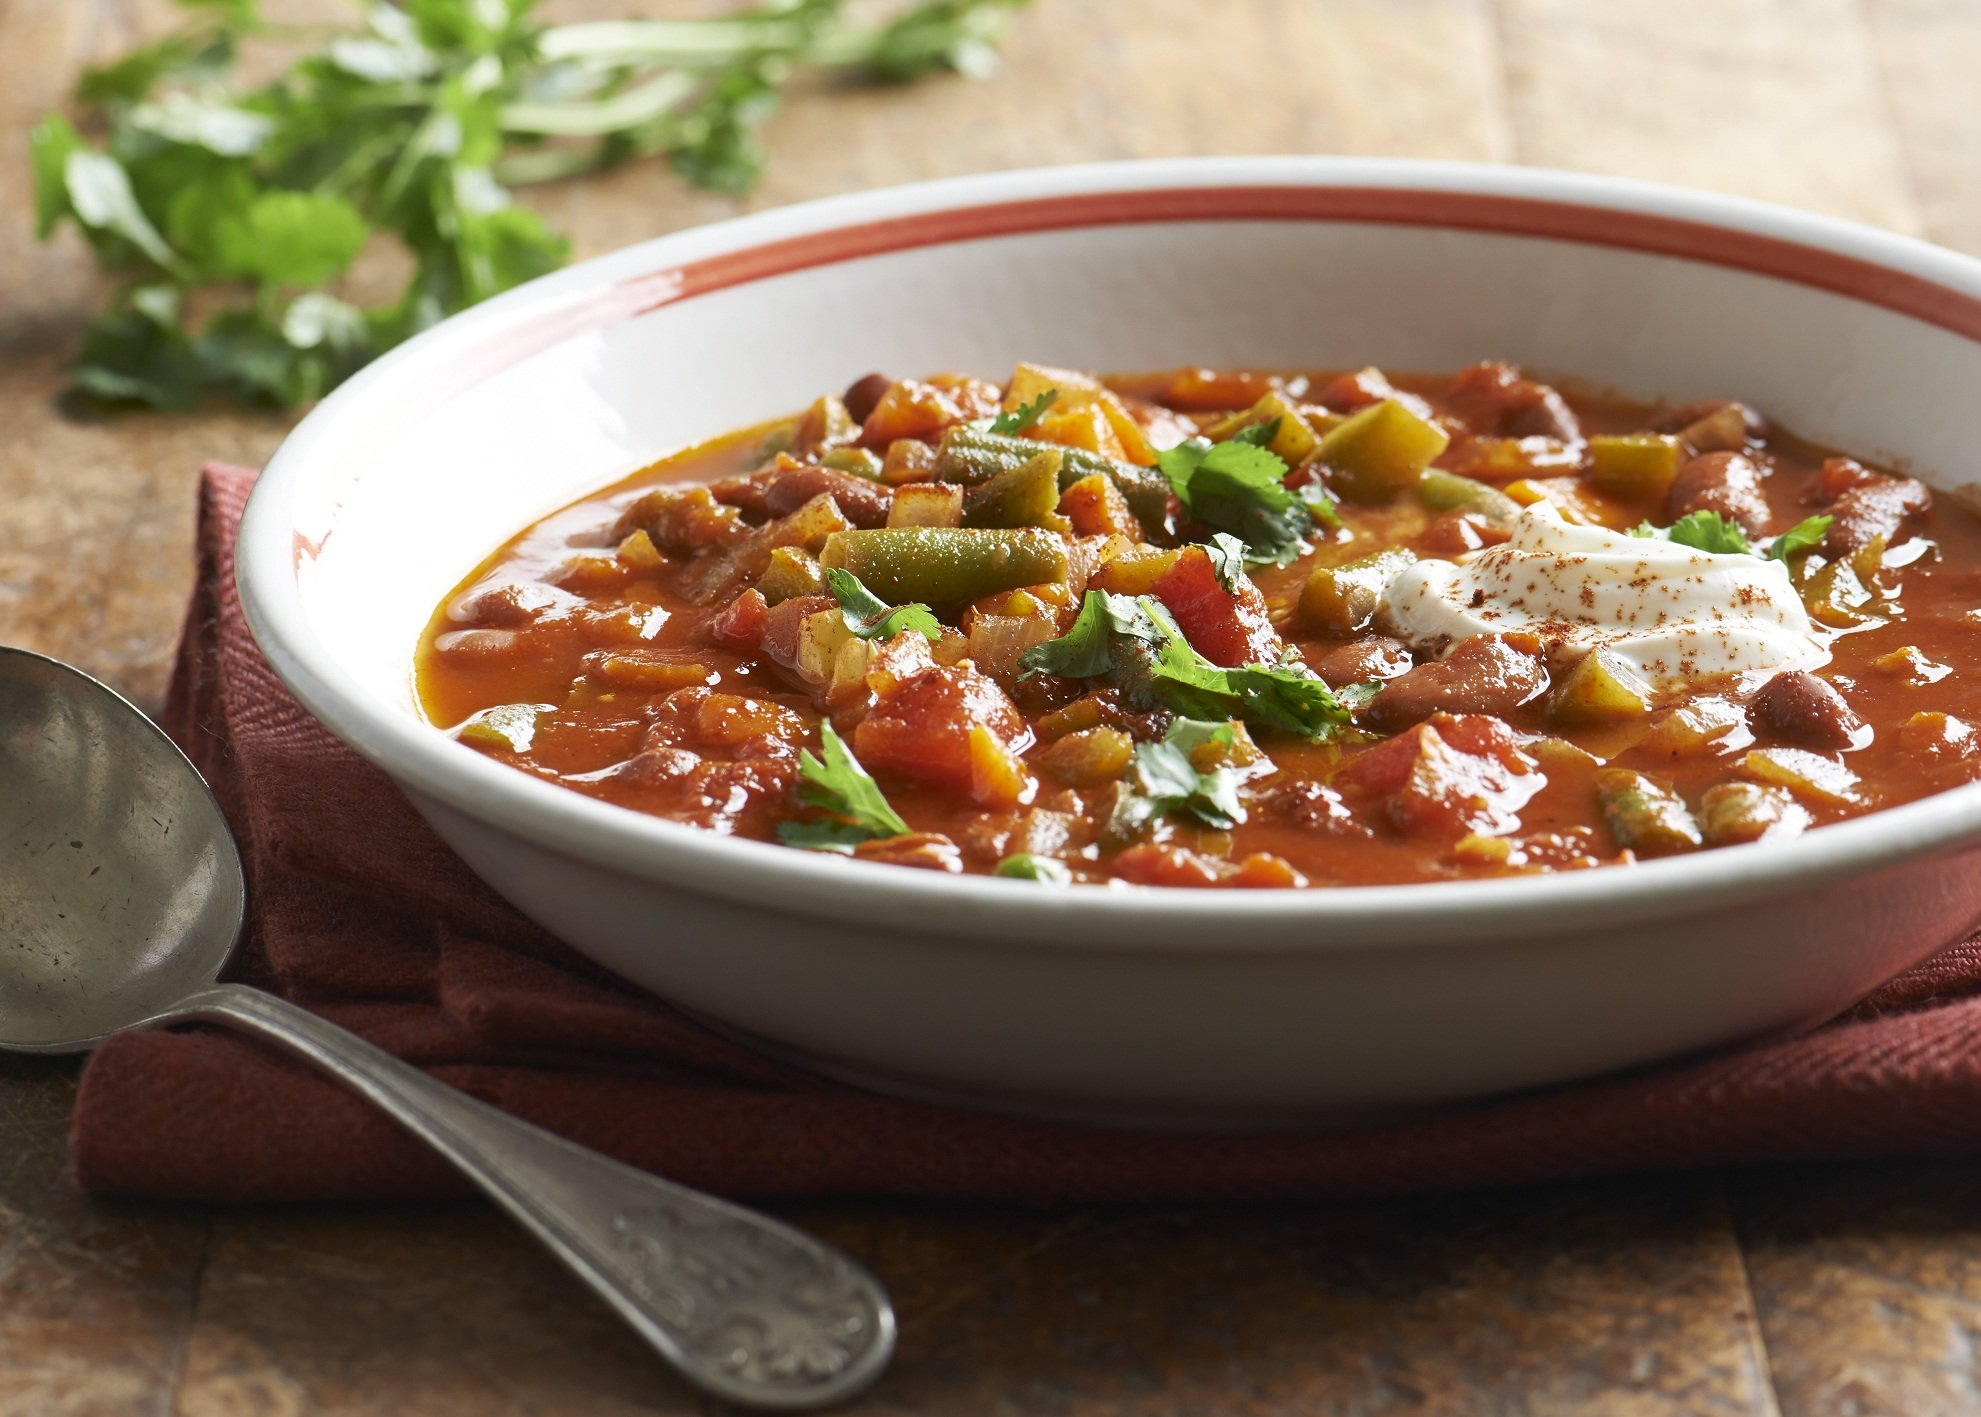 Boom! Add some exotic beans to your chili recipes. Photo via Meredith Publishing